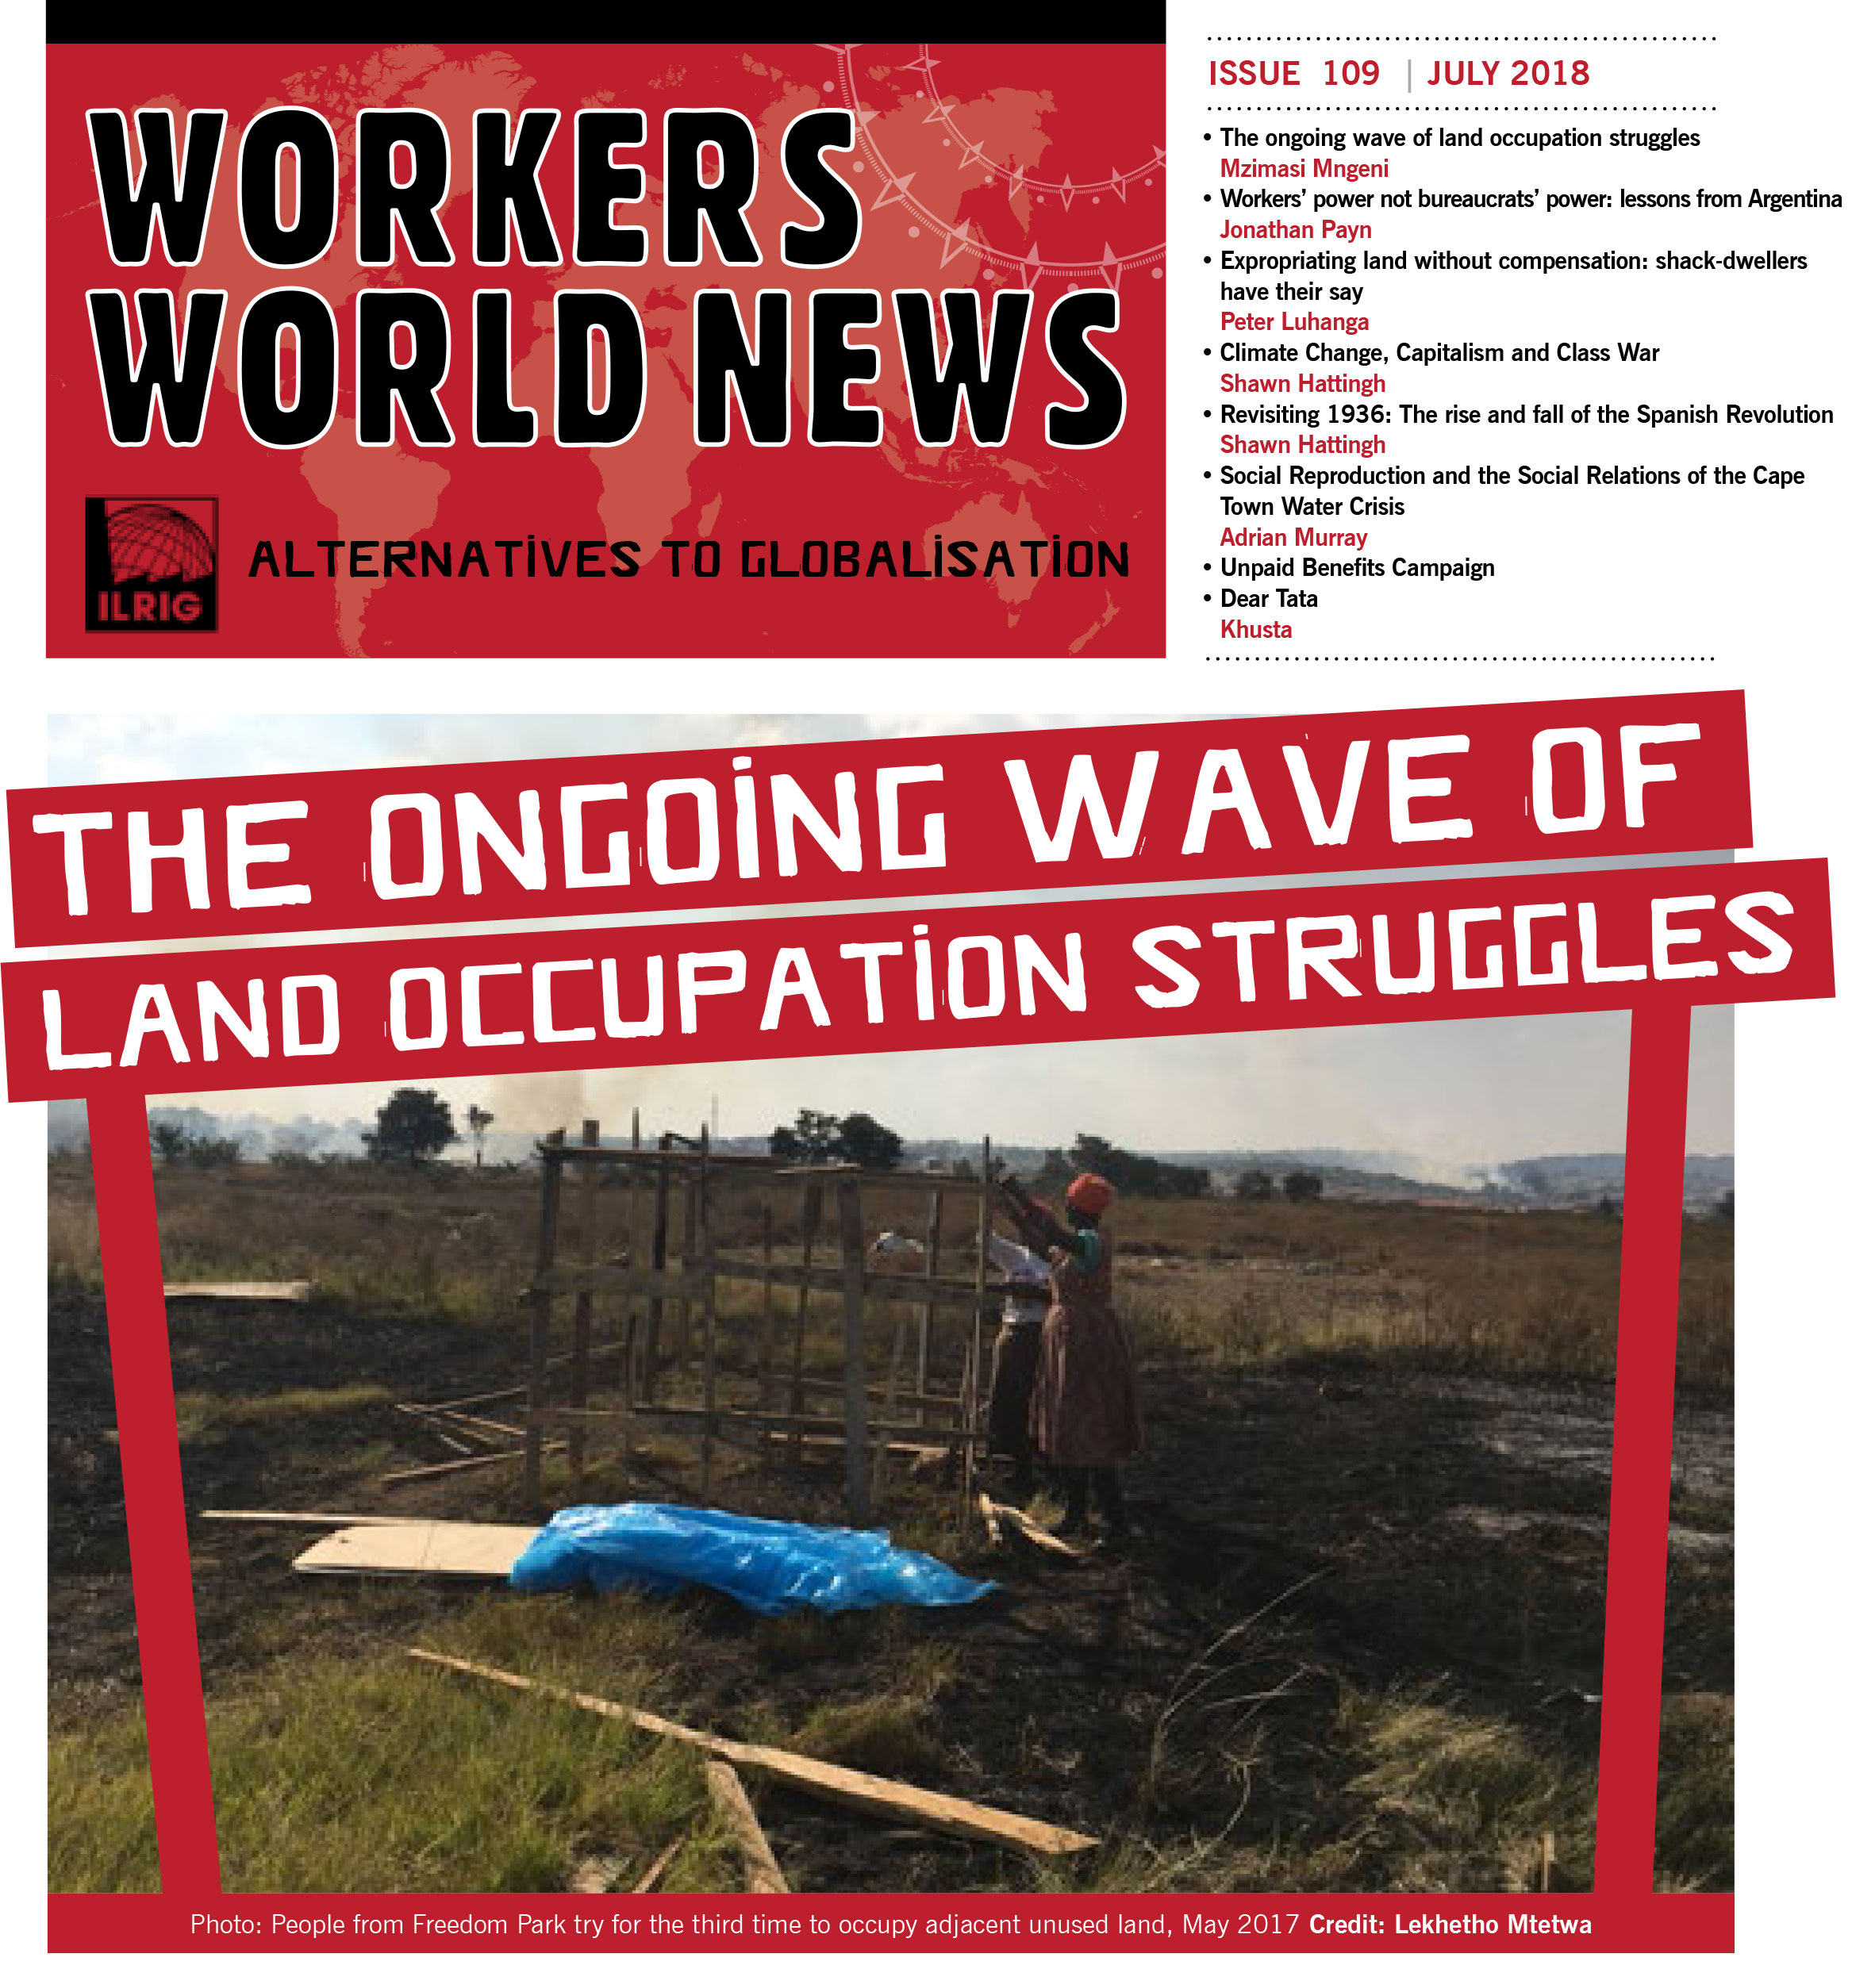 workers world news